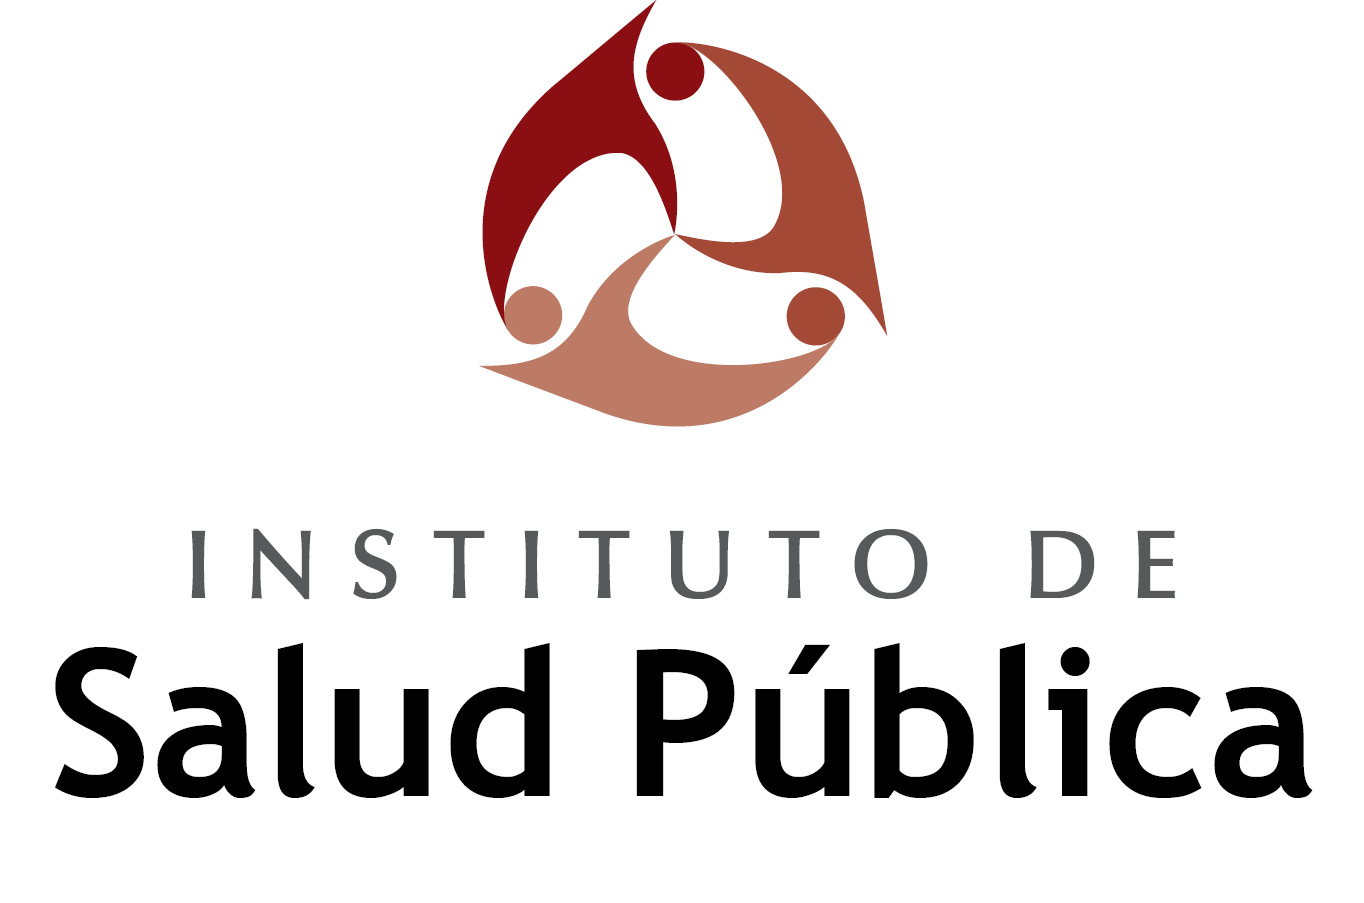 ISP - Instituto de Salud Pública